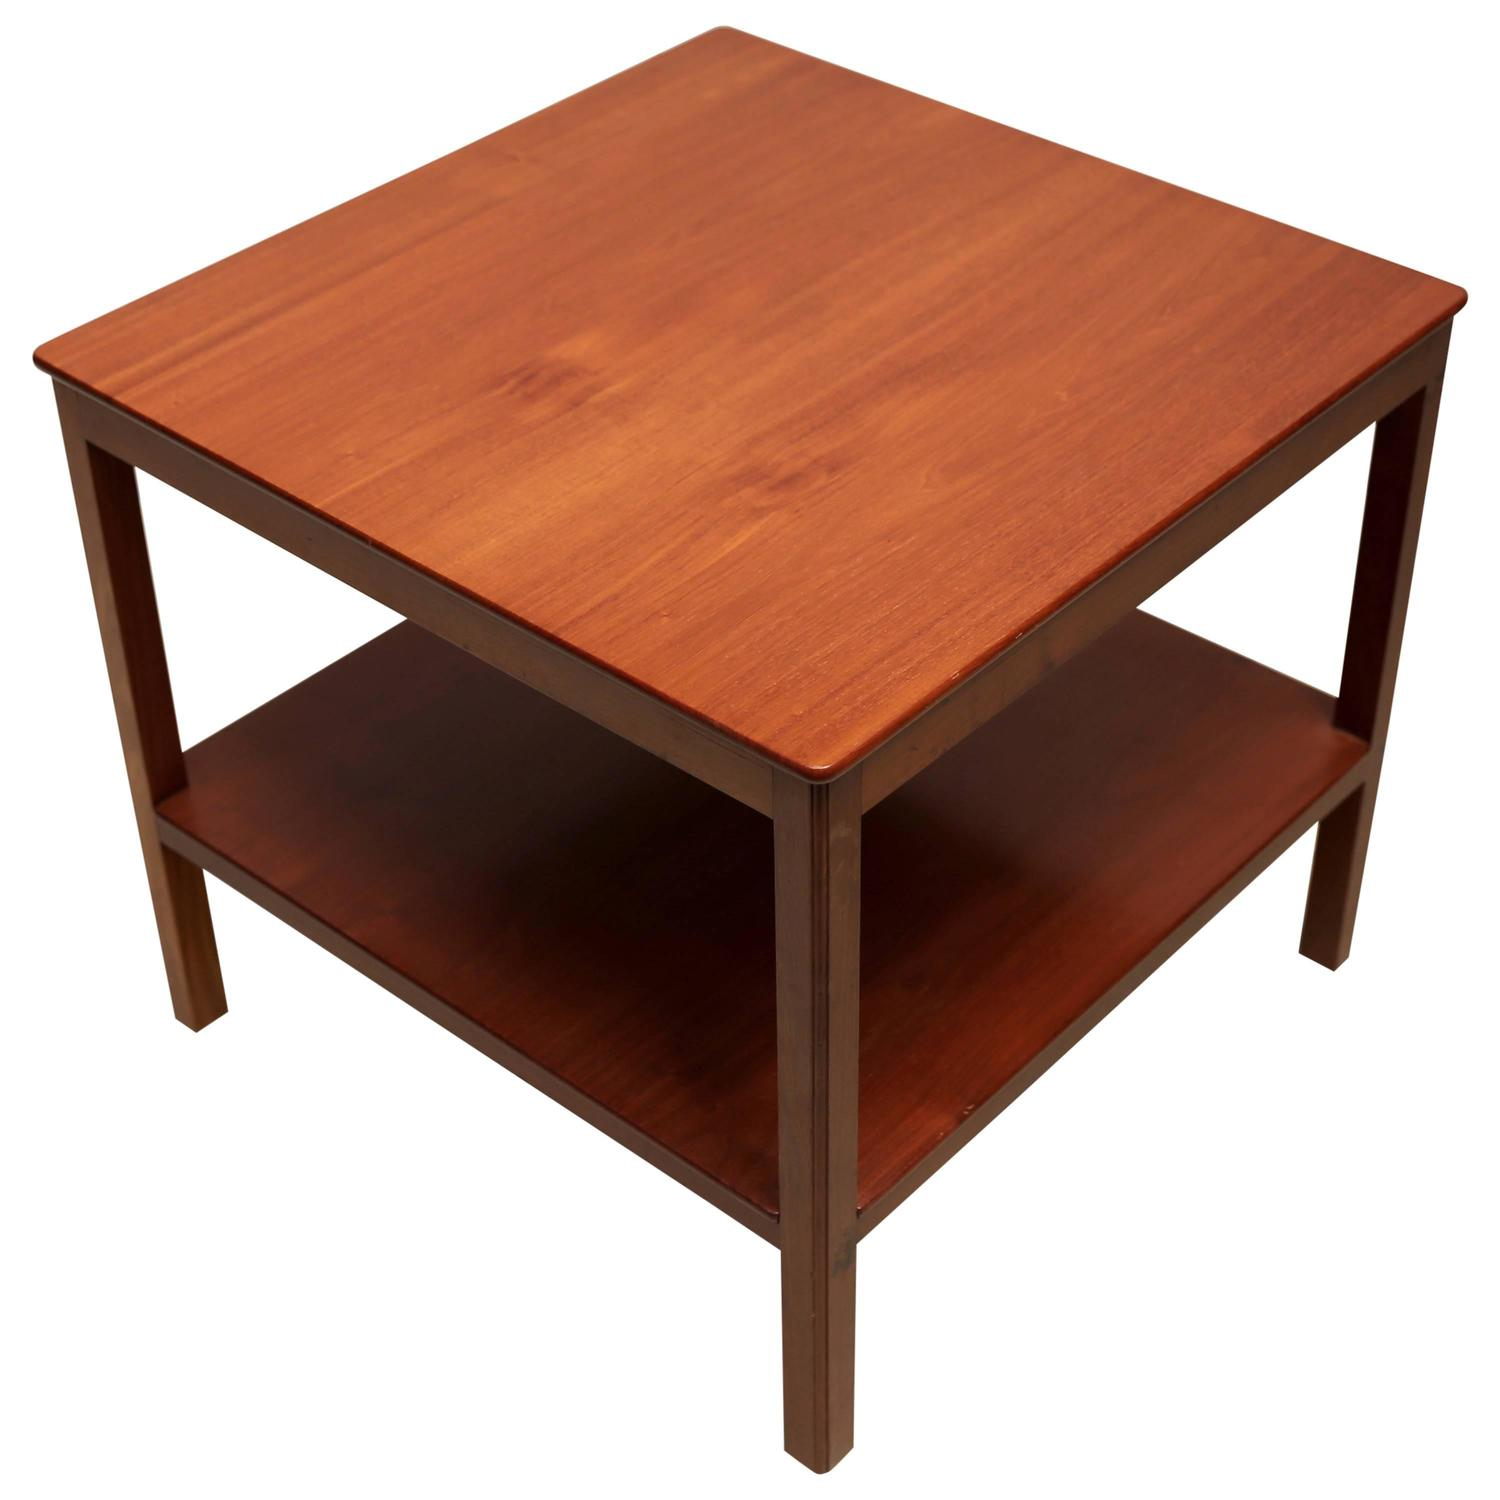 Square Side Table with Bottom Shelf in Cuban Mahogany by Kaare